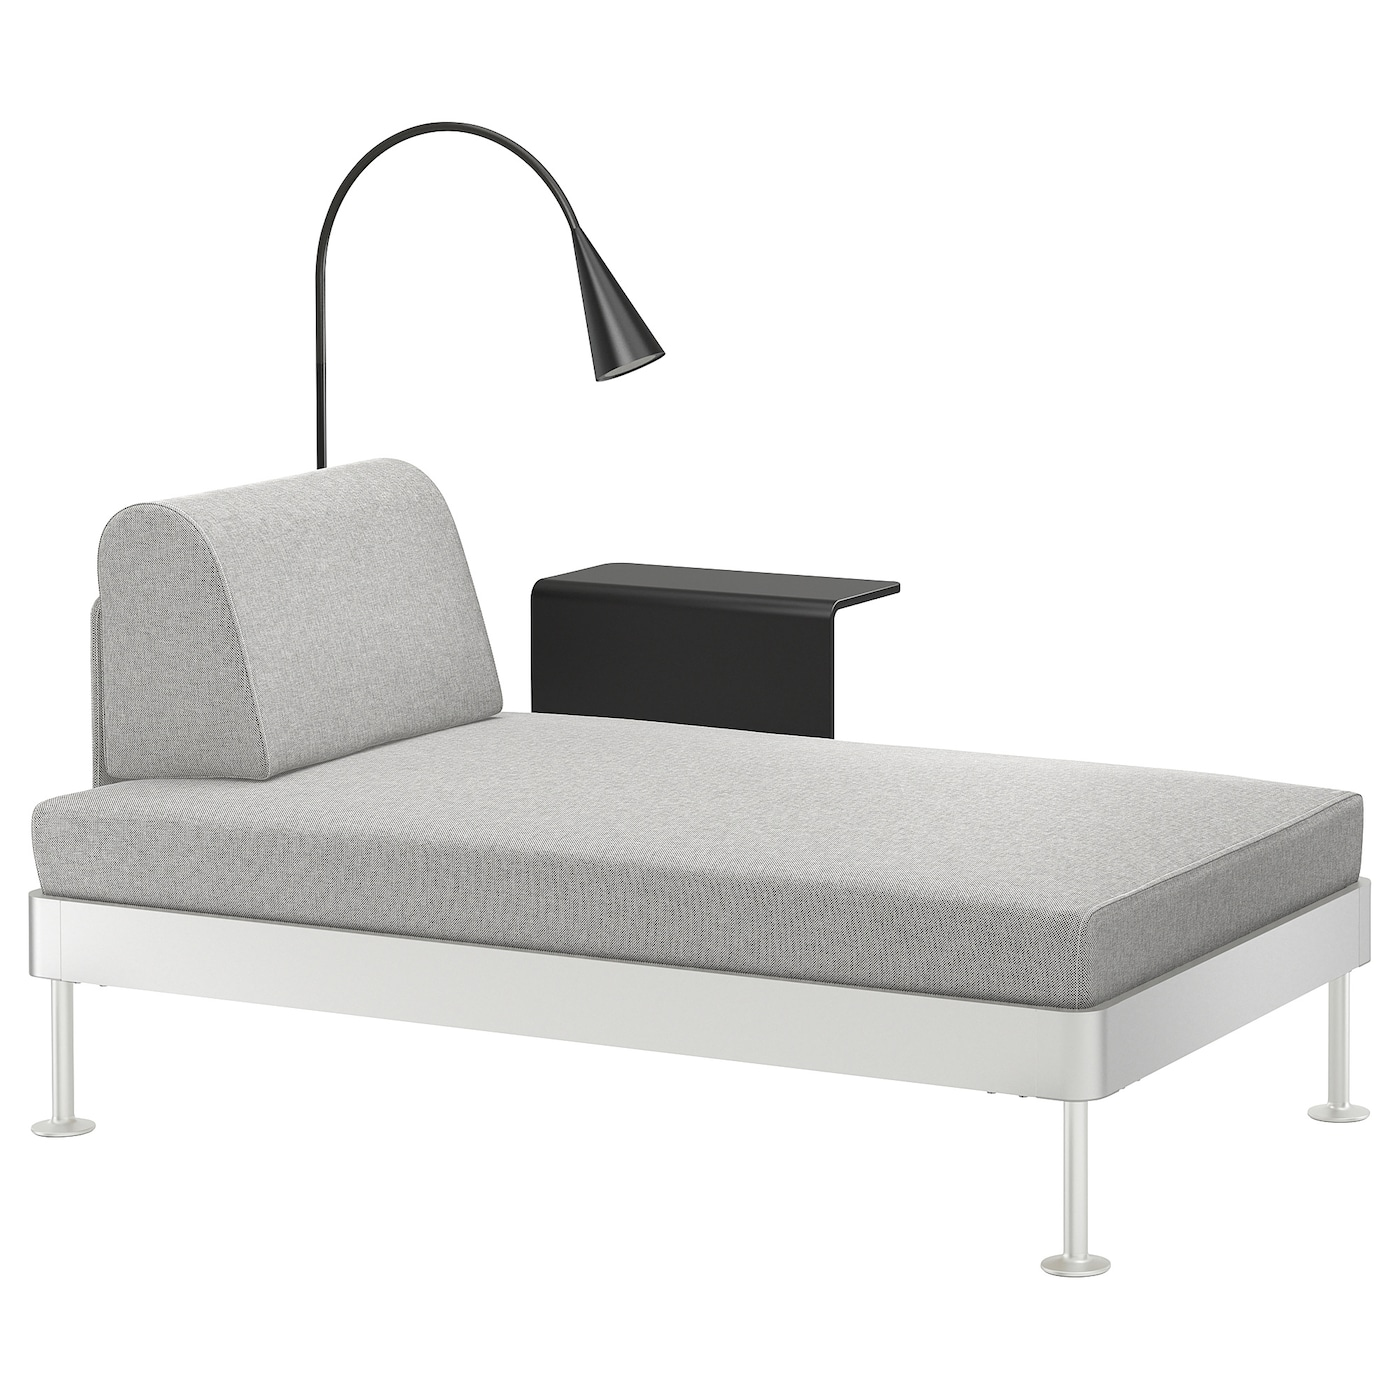 Ikea sofa chaise vilasund sofa bed with chaise longue for Table chaise ikea